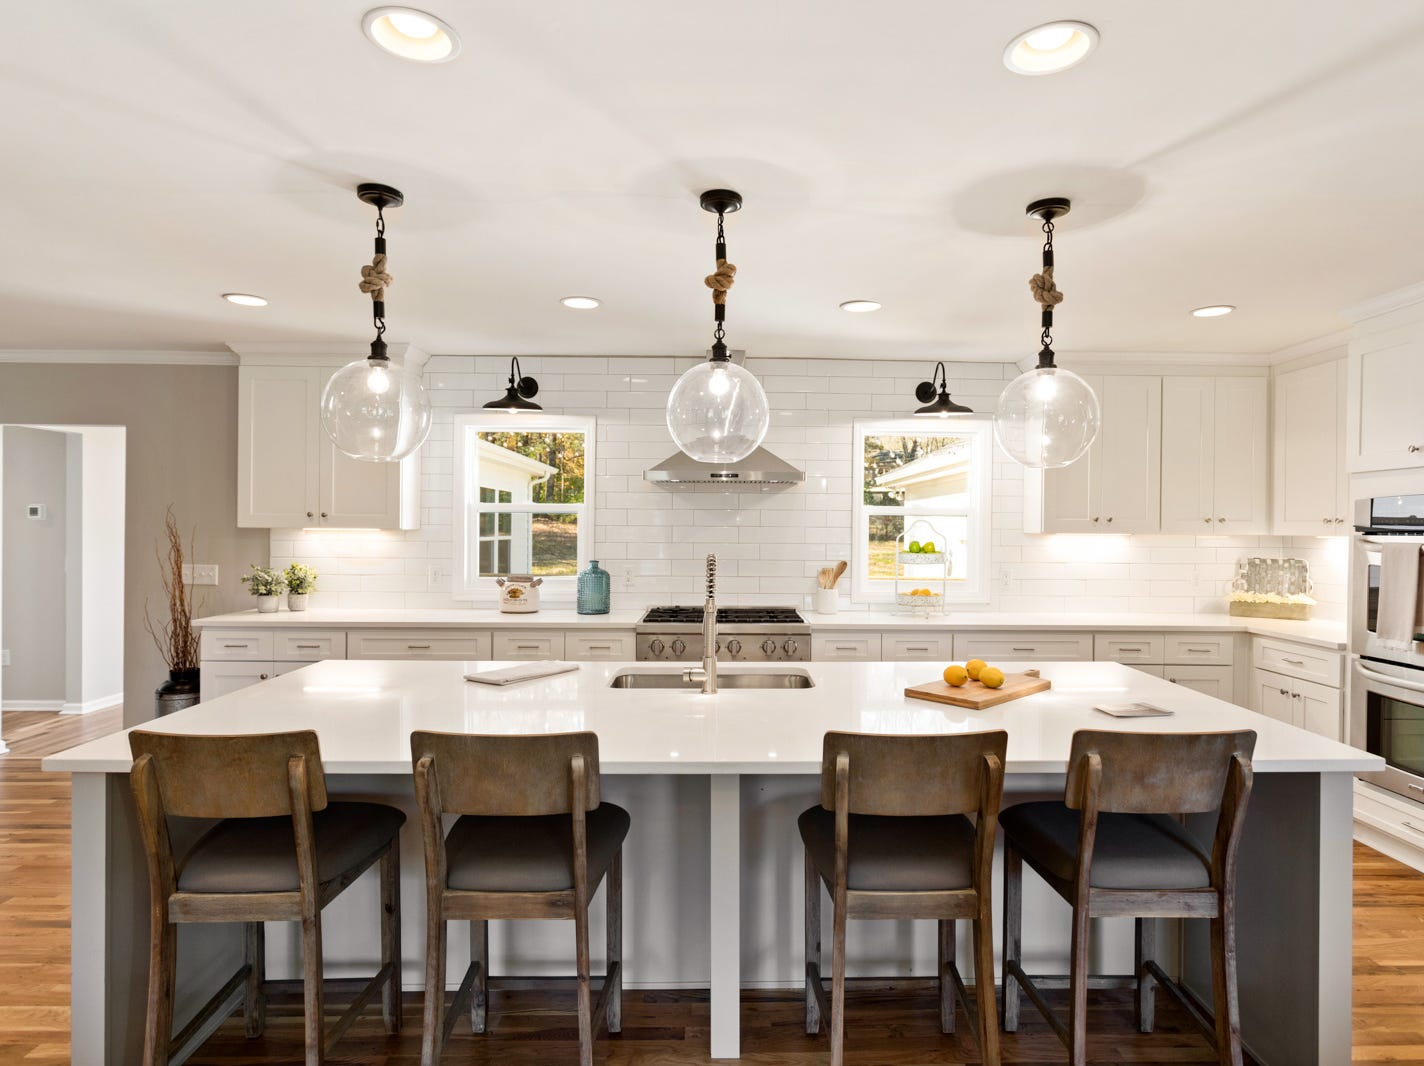 AFTER: This shows 1104 Chelsea Court's newly remodeled open kitchen with large island.